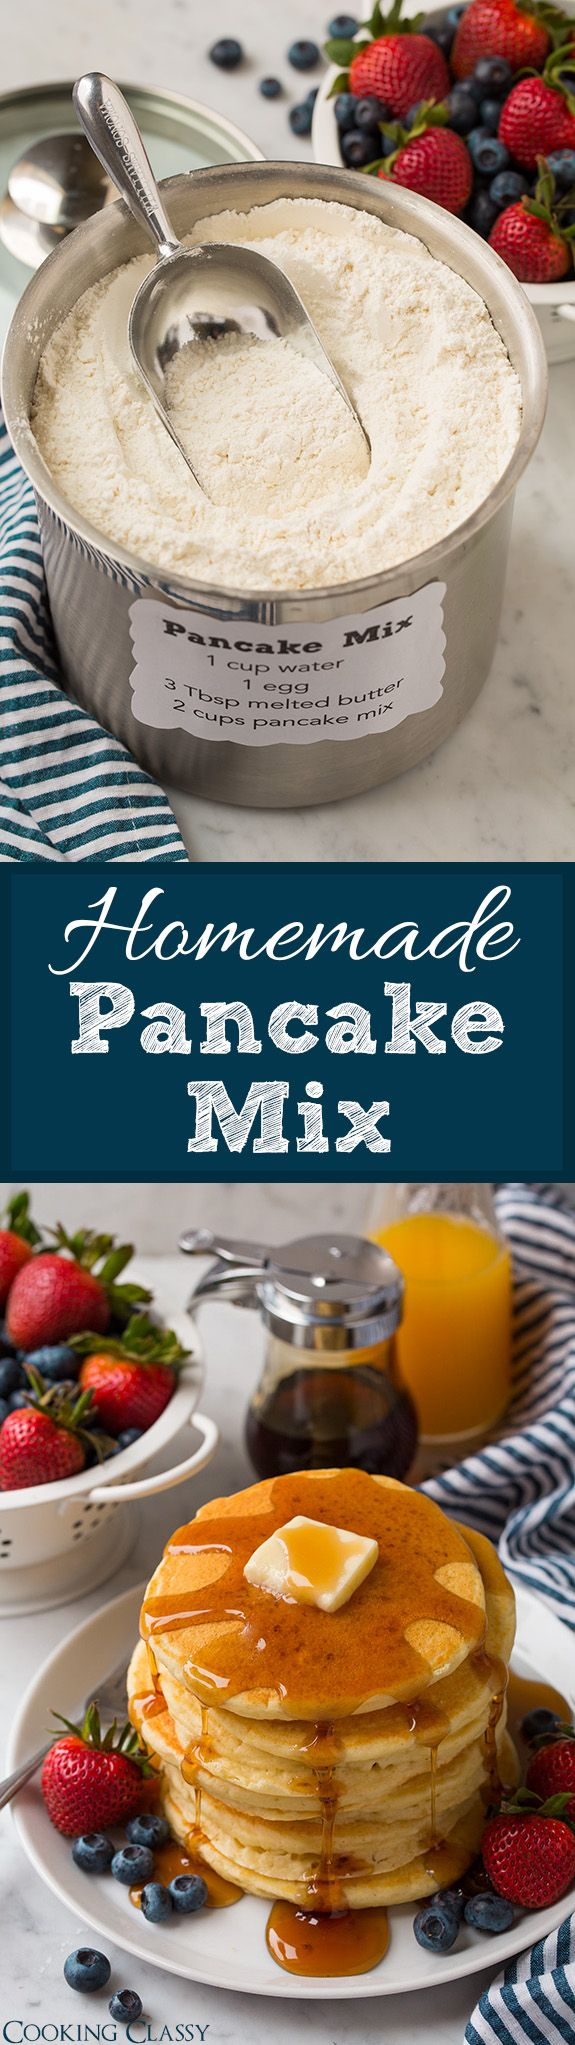 Homemade Pancake Mix - you'll never need to buy the store-bought stuff again! Makes delicious, soft and fluffy pancakes every time.